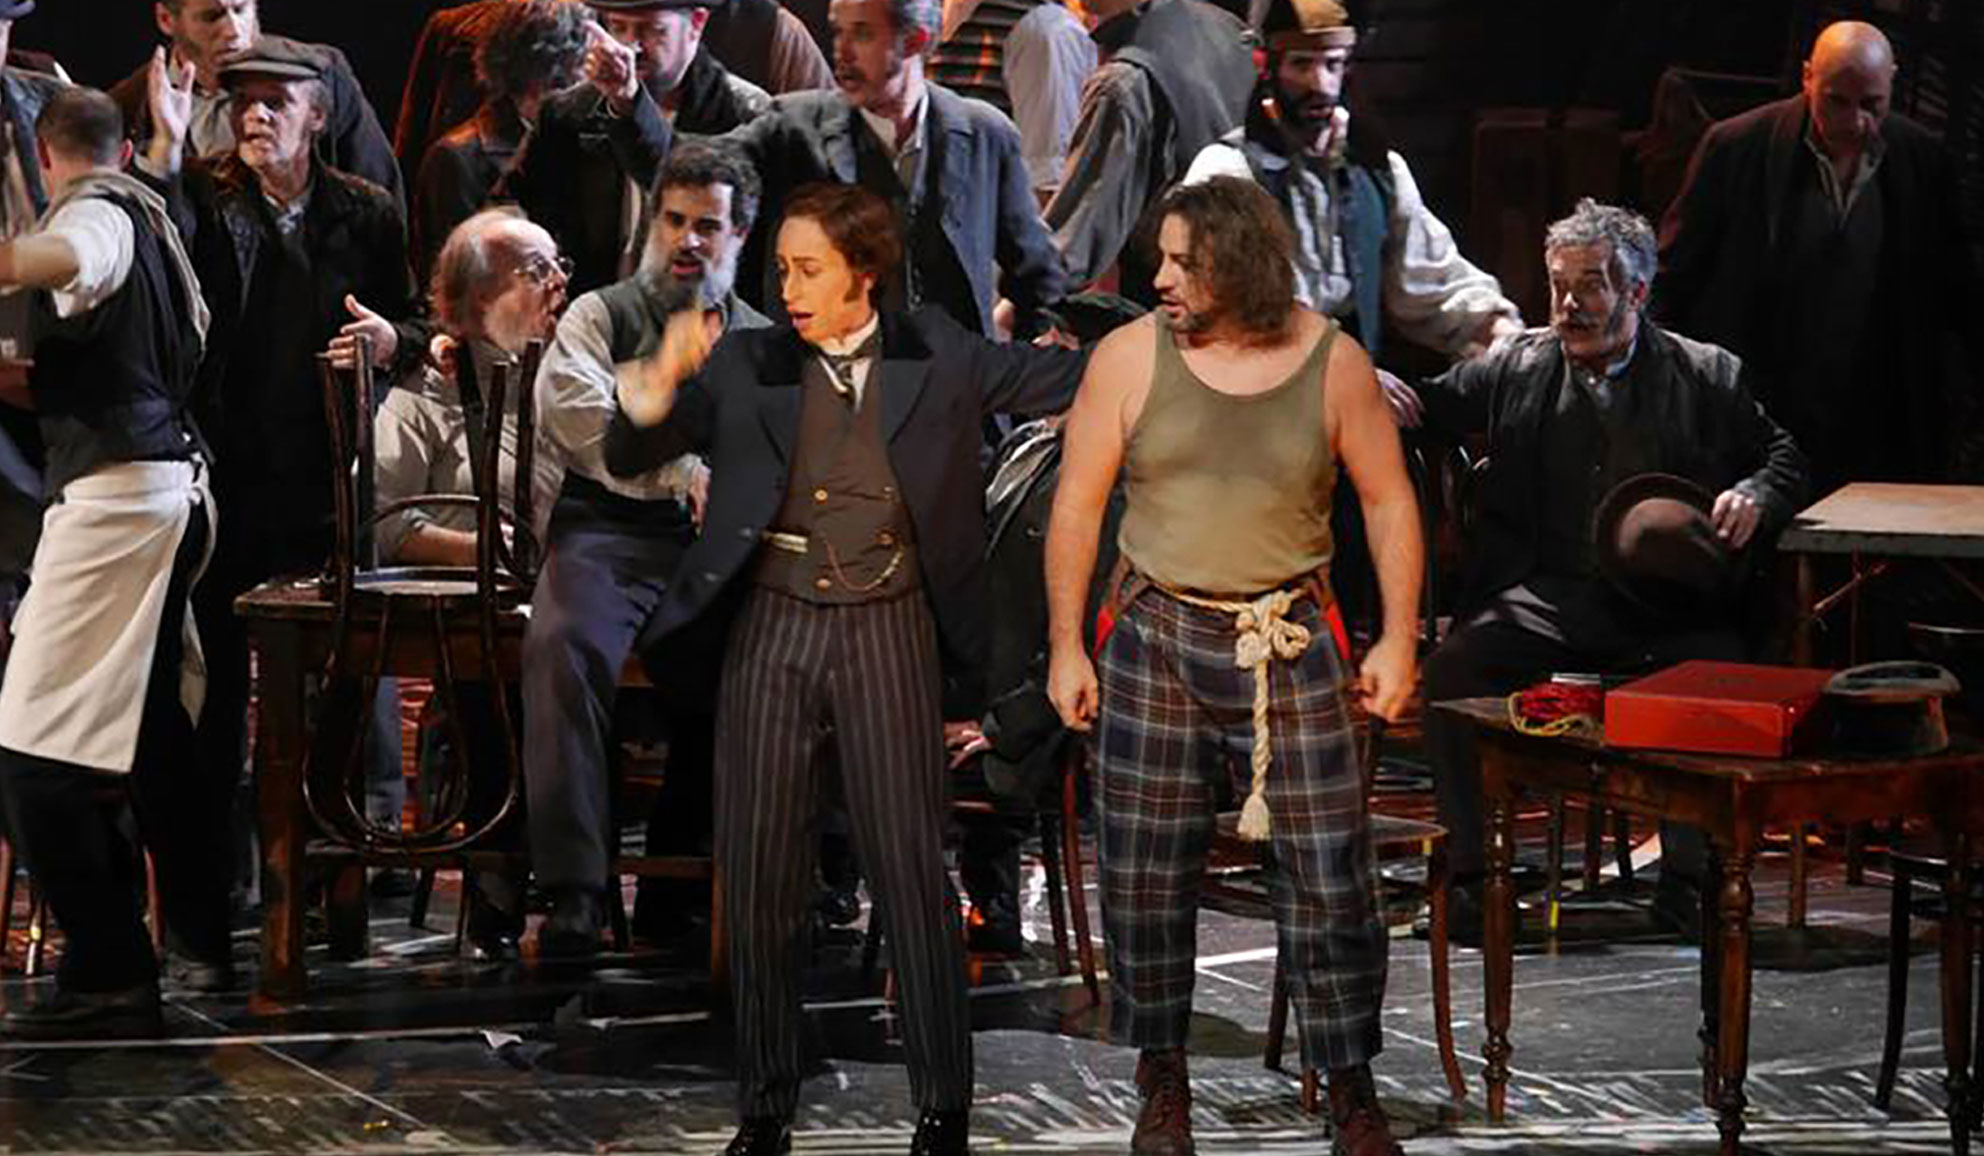 Lidia Vinyes Curtis acting as Ascanio in Benvenuto Cellini at Liceu 2015